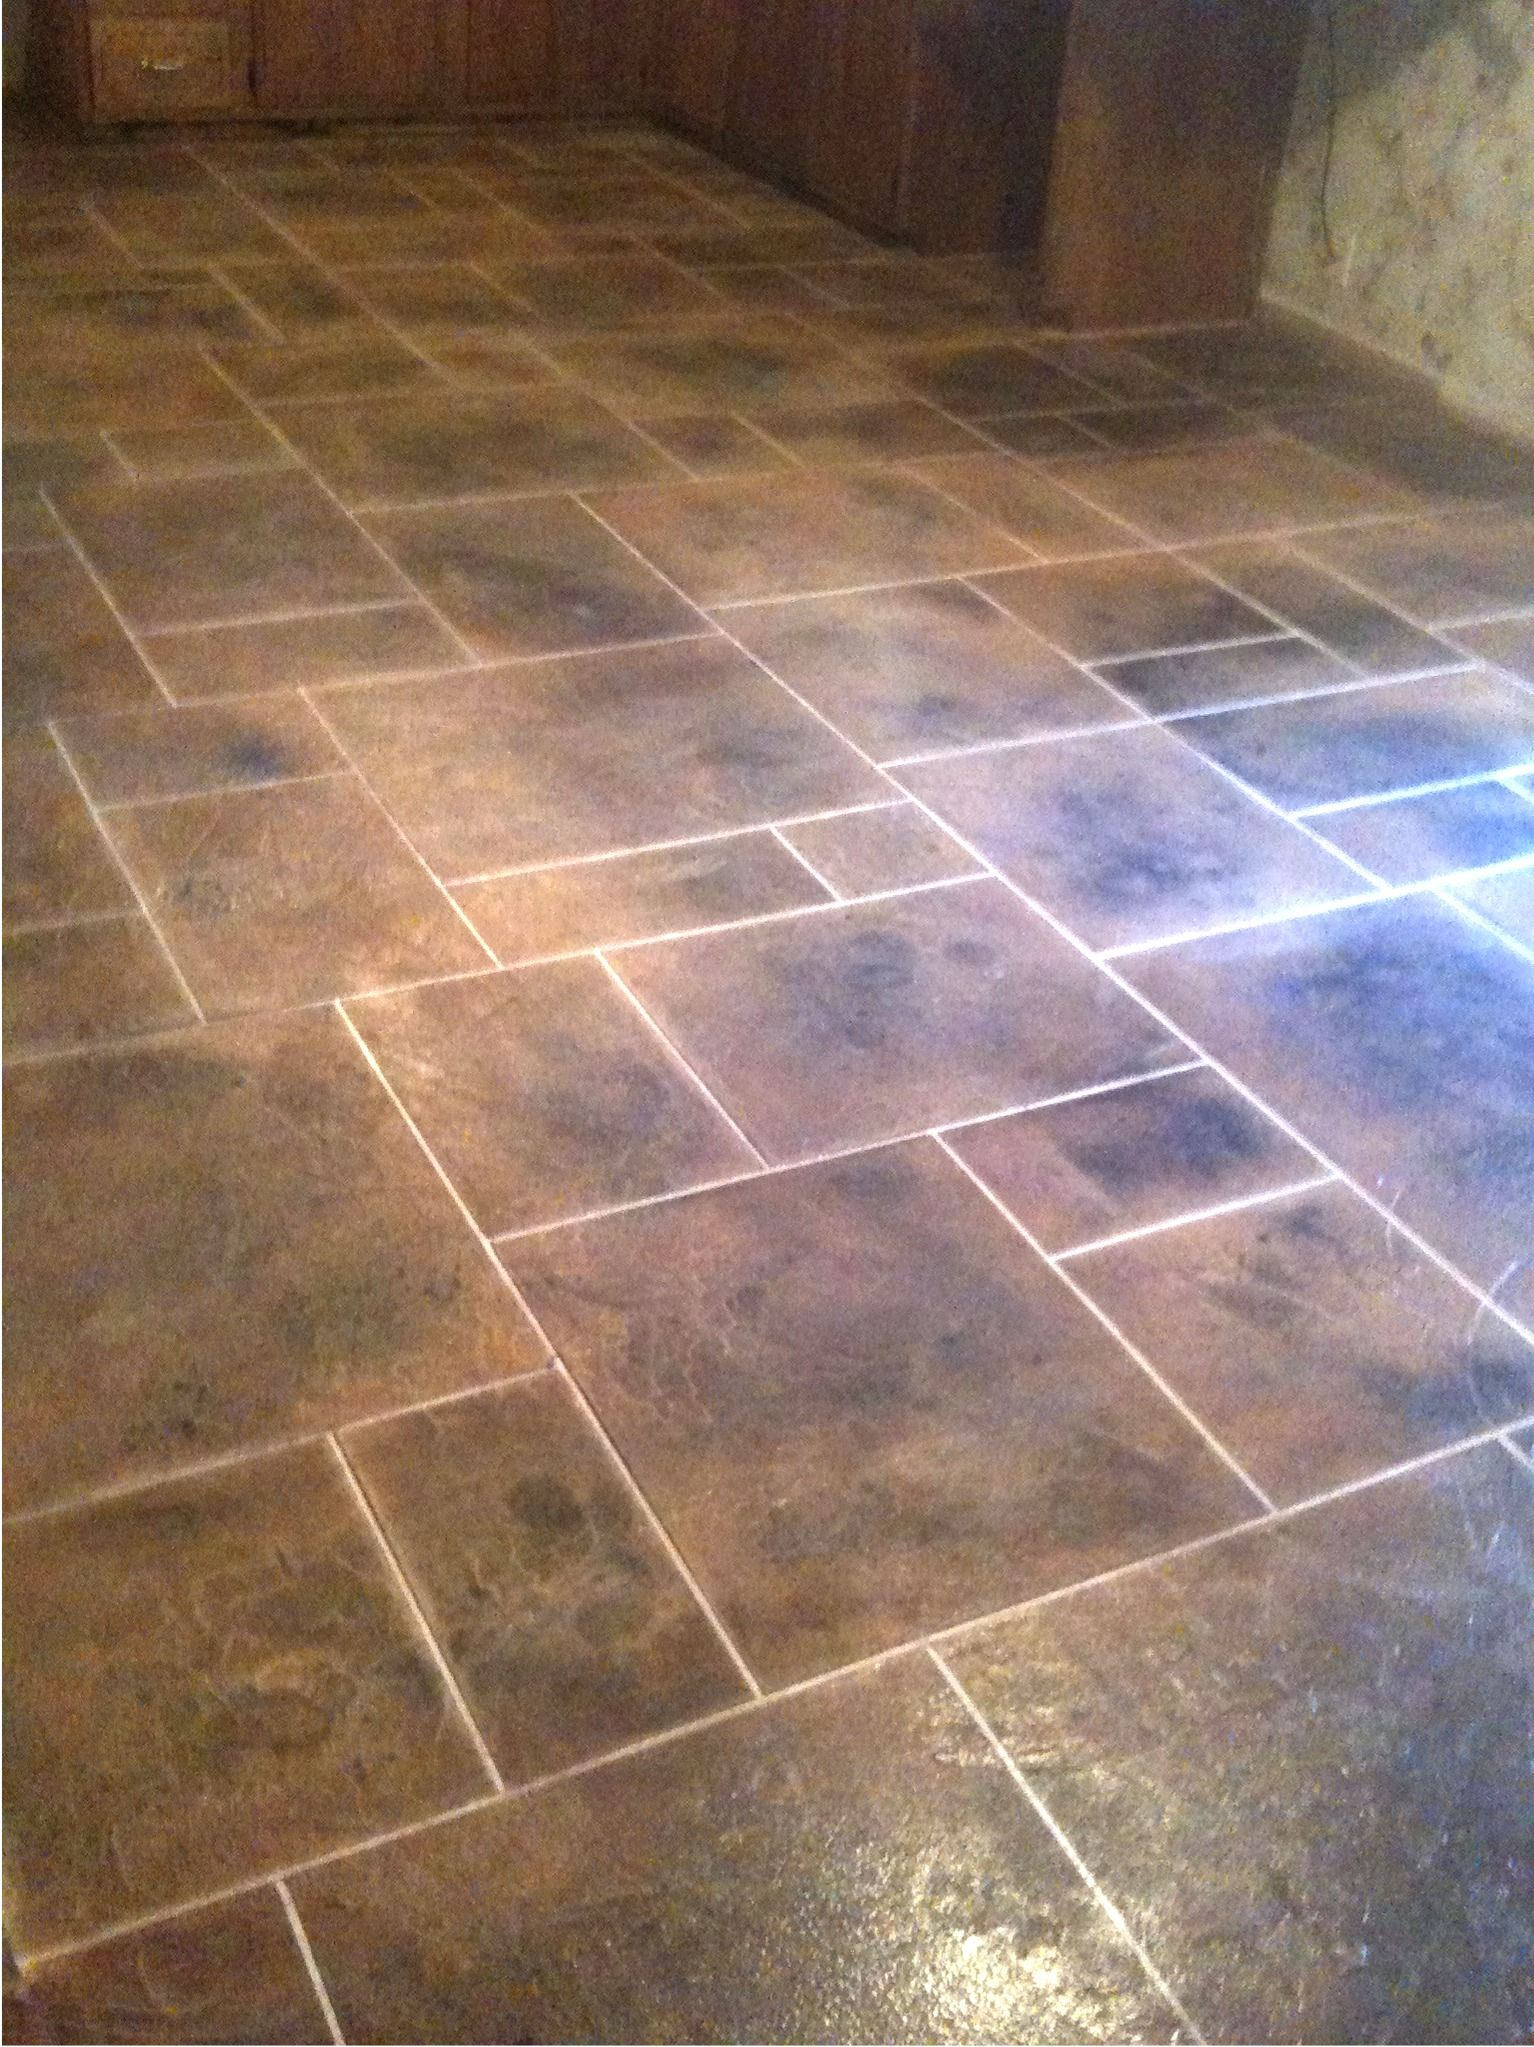 kitchen floor tile patterns concrete overlay random pattern stone tile kitchen floor in progress interesting ideas pinterest pattern concrete. Interior Design Ideas. Home Design Ideas